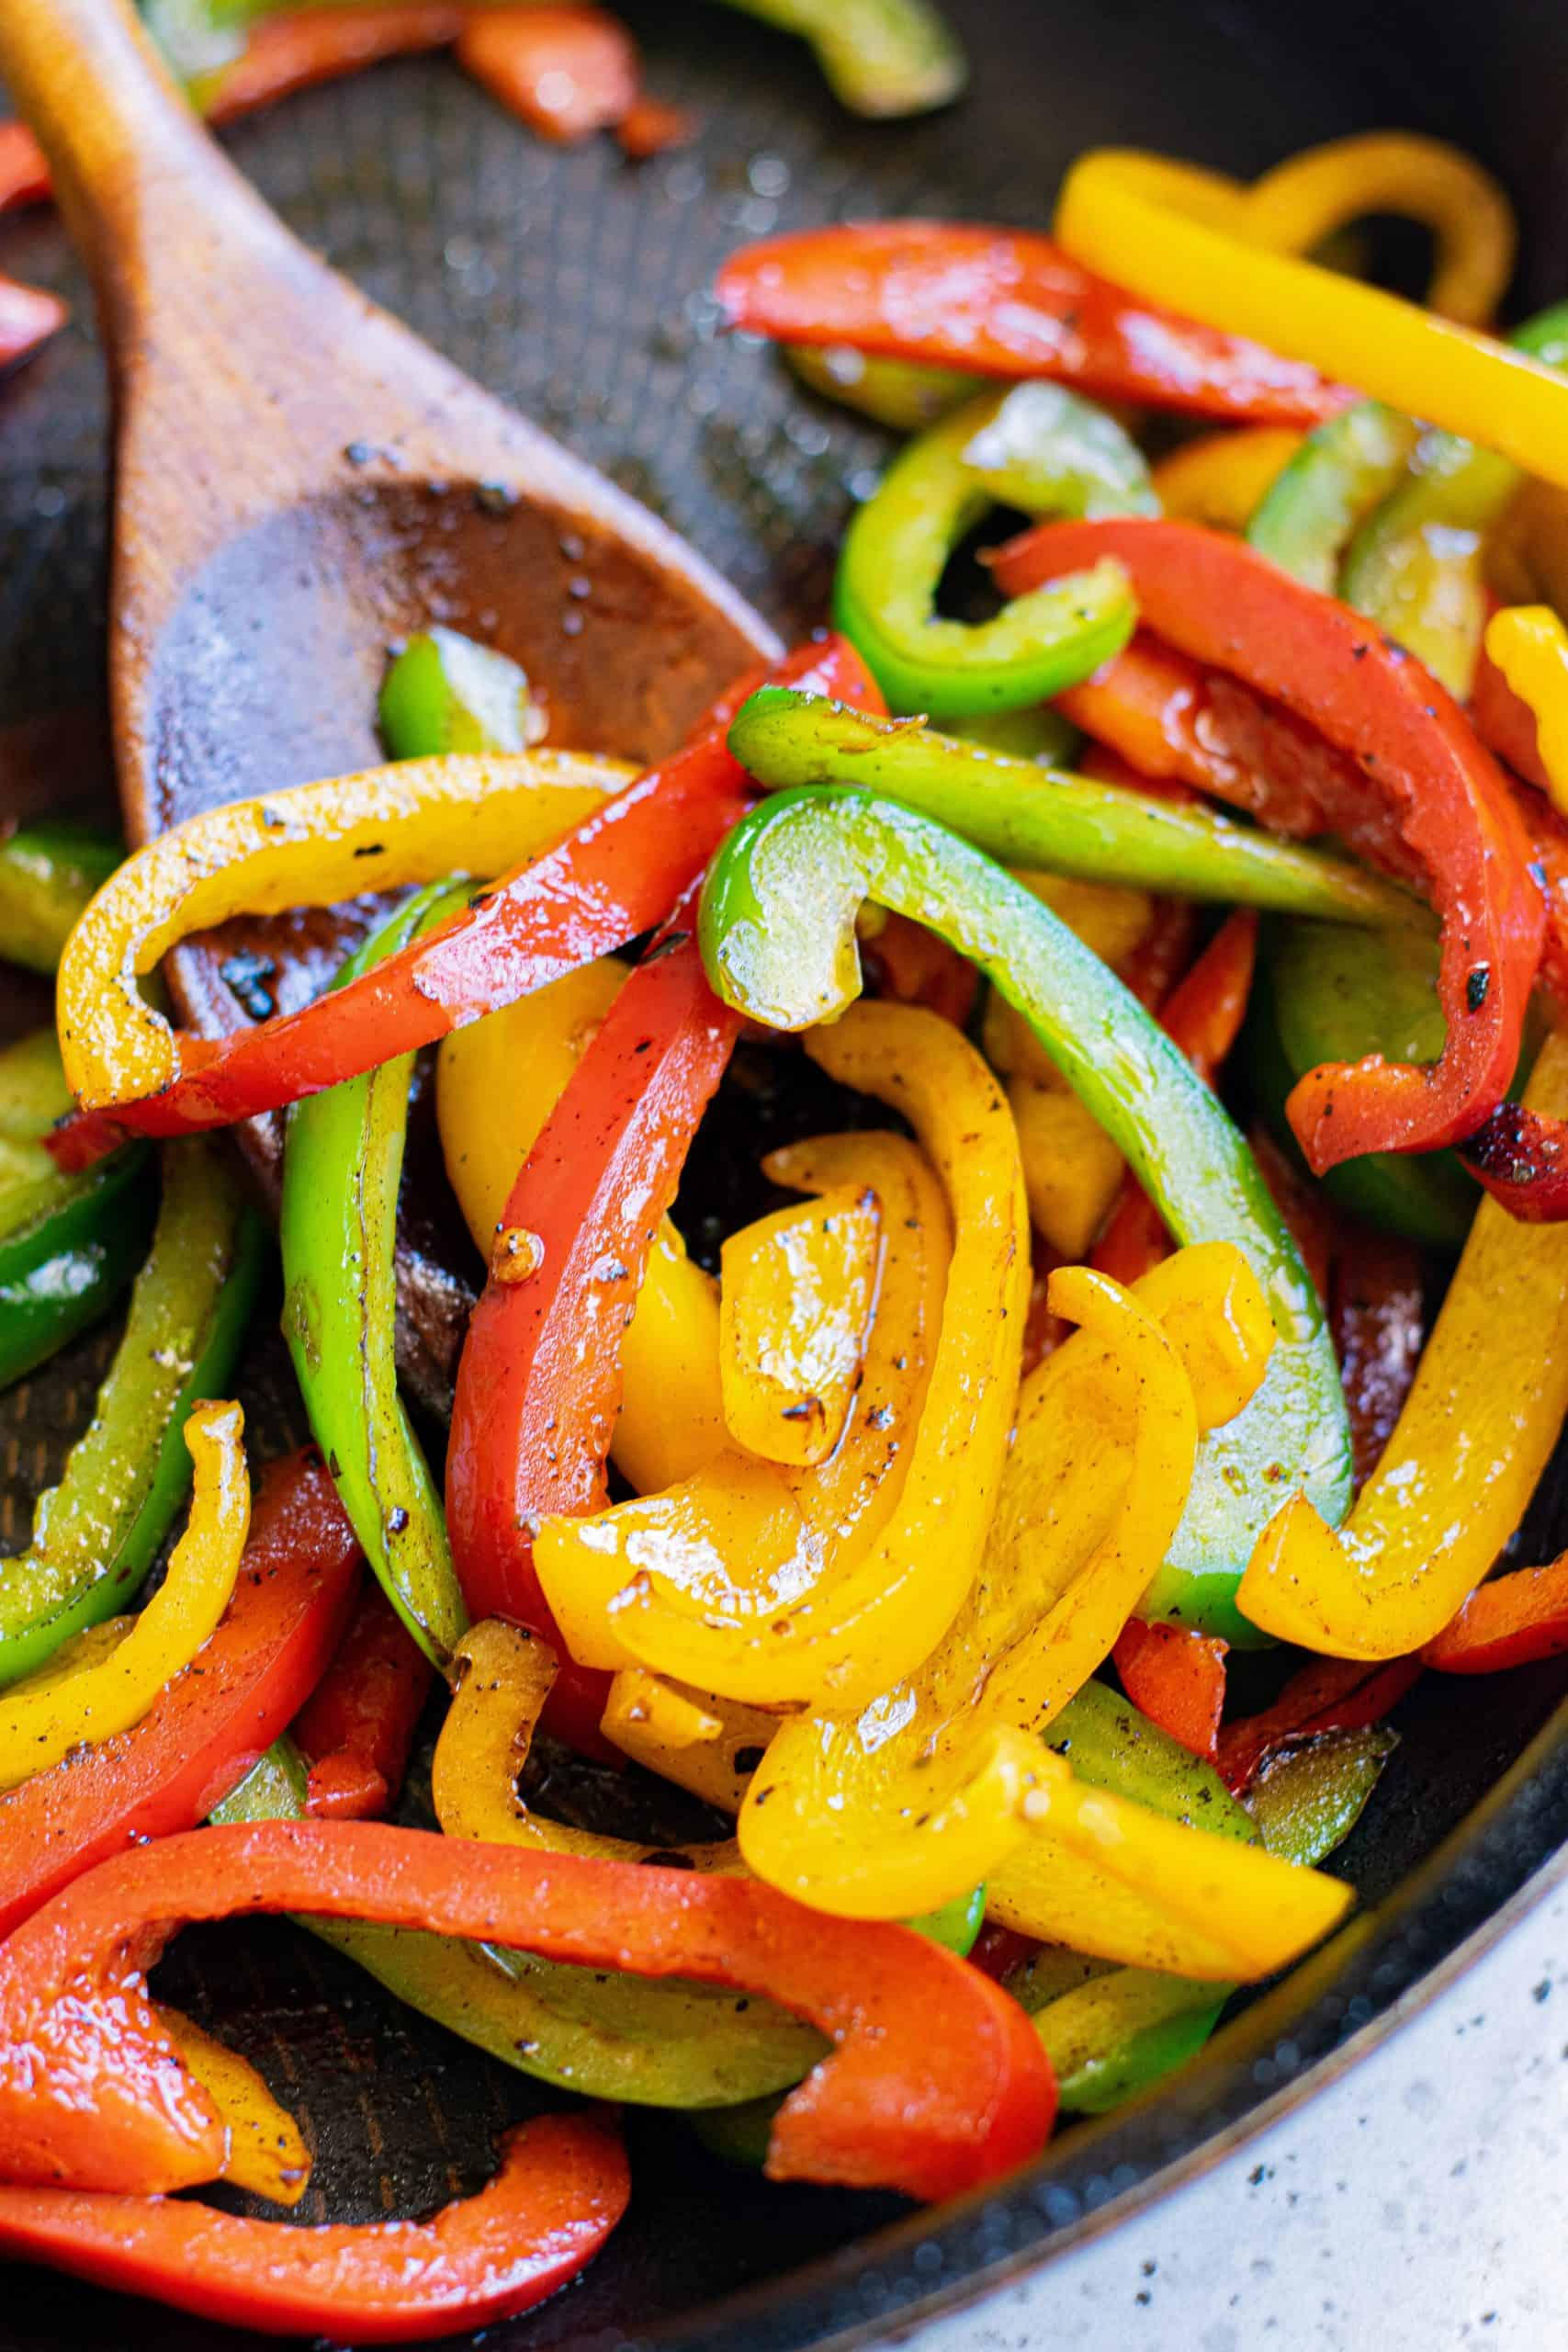 Peppers being cooked in pan.